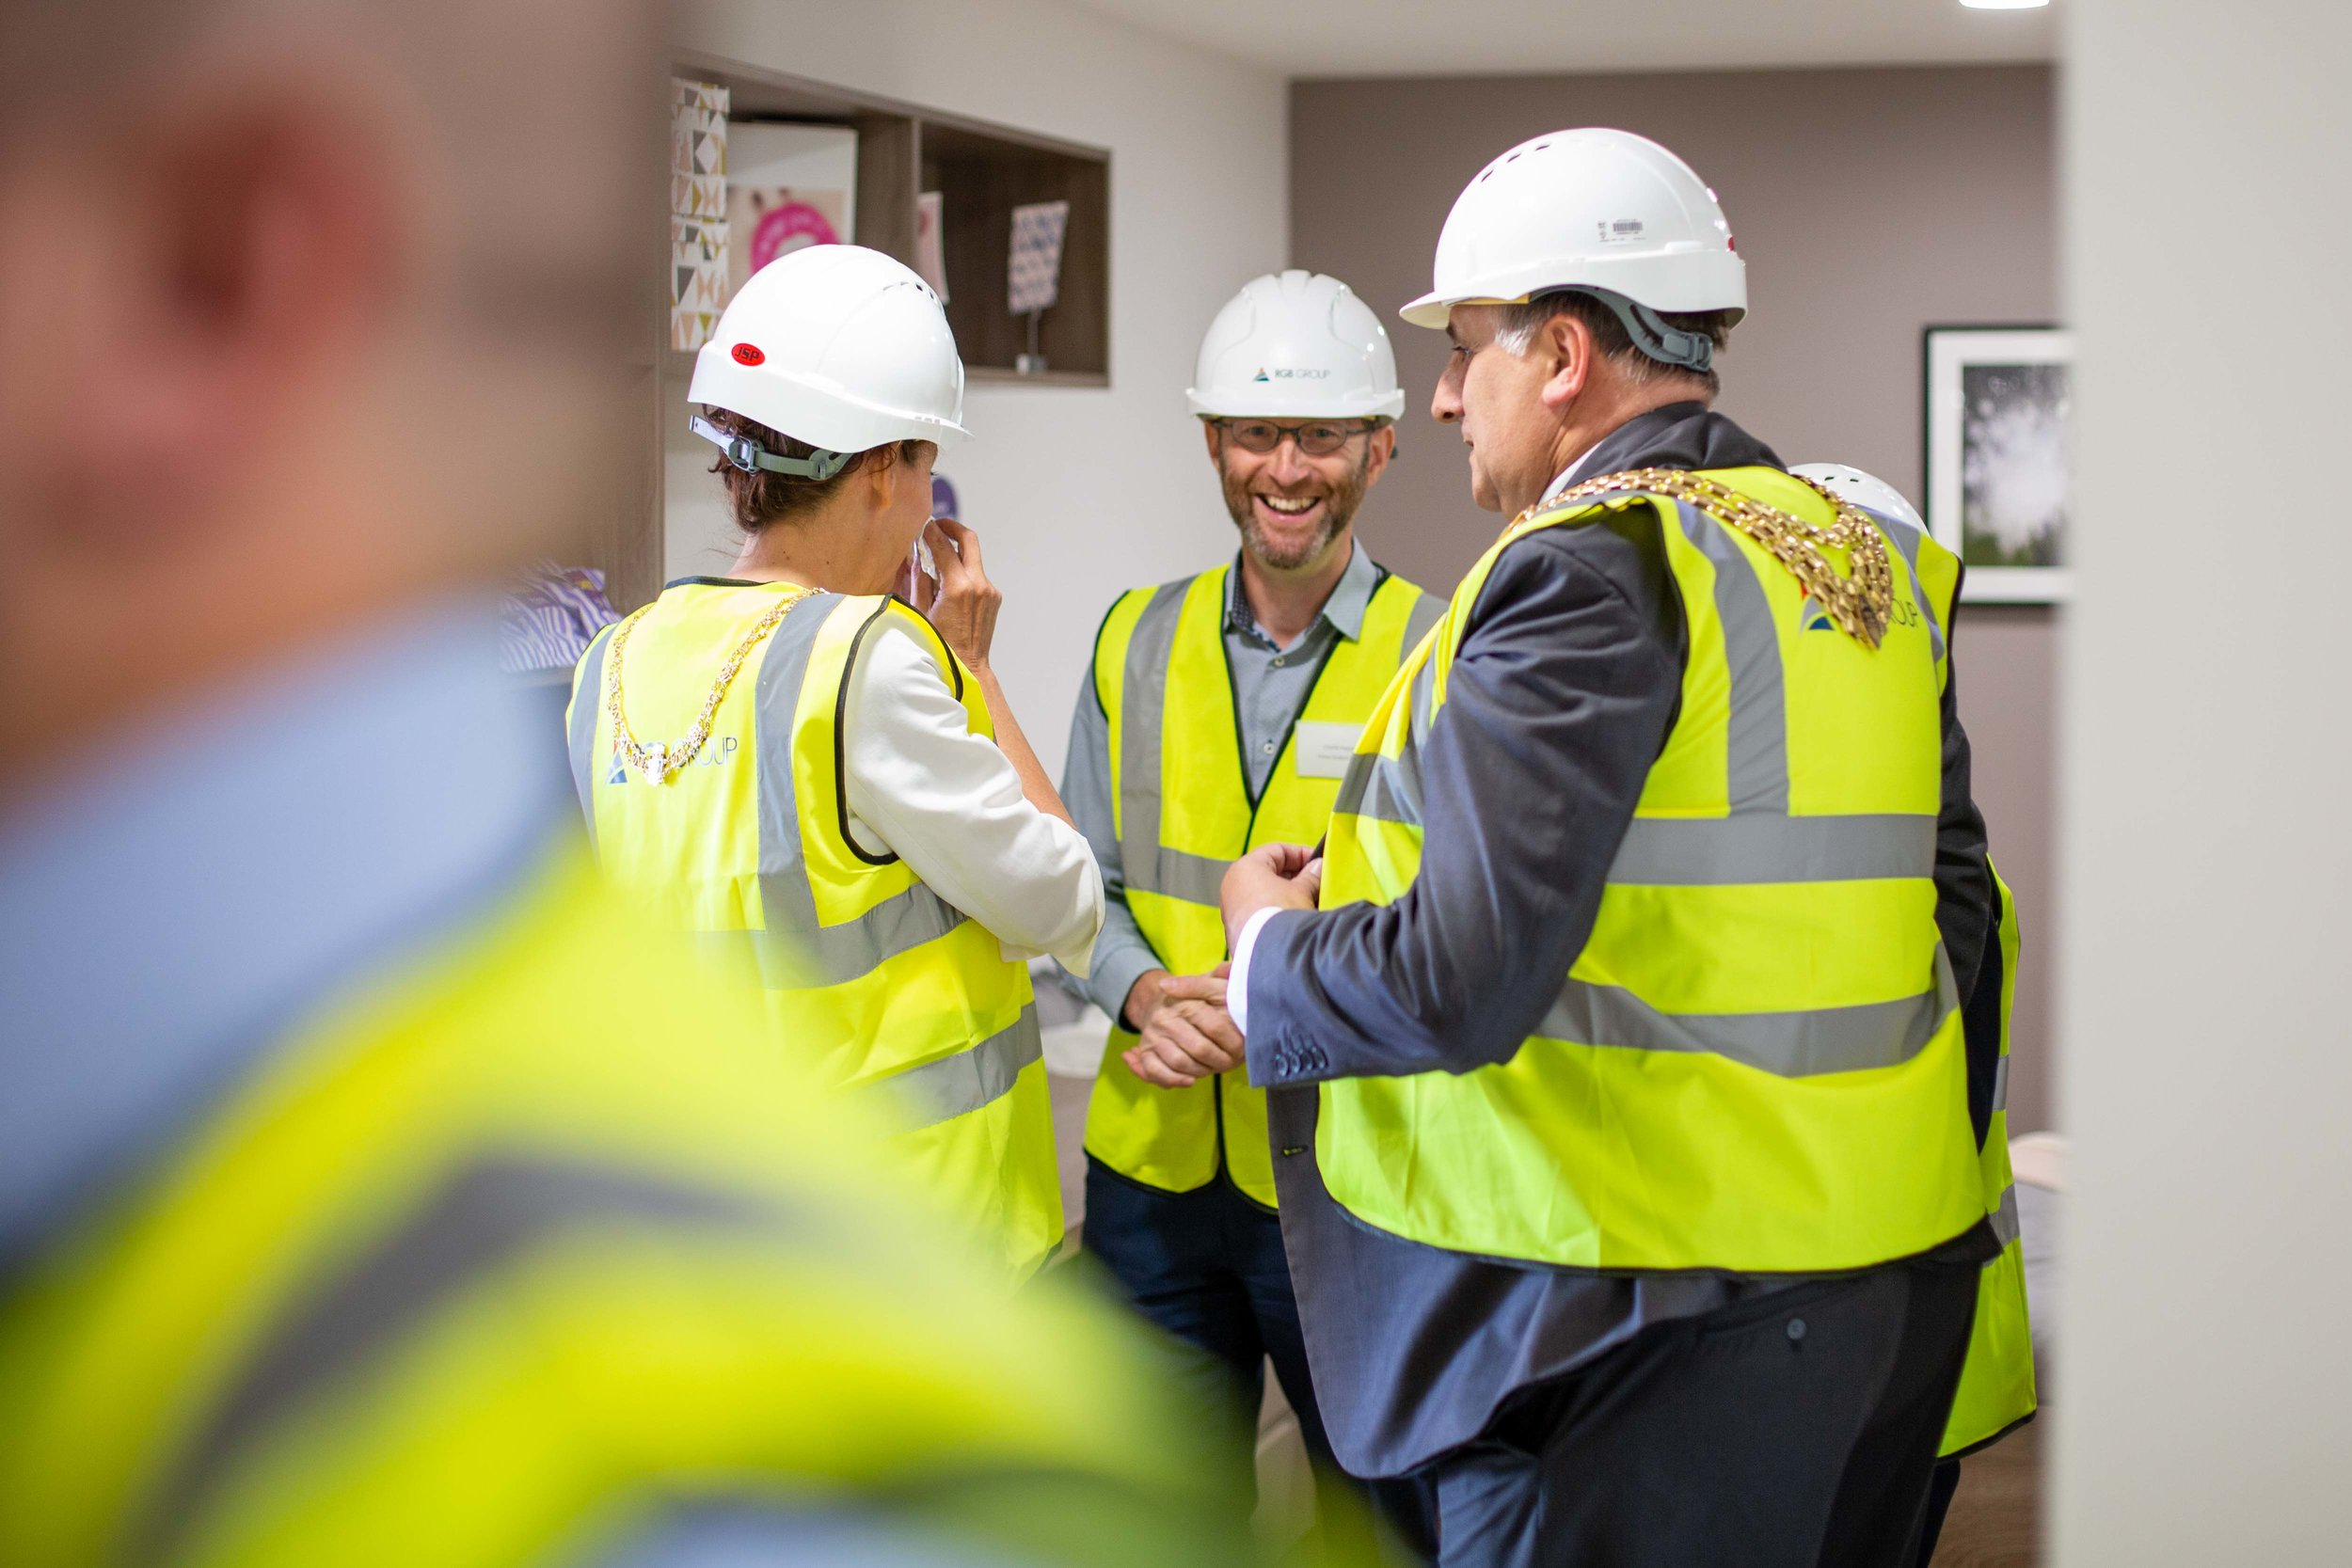 Stanhope House Topping Out 28.05.19 - Solent Sky Services--57.JPG